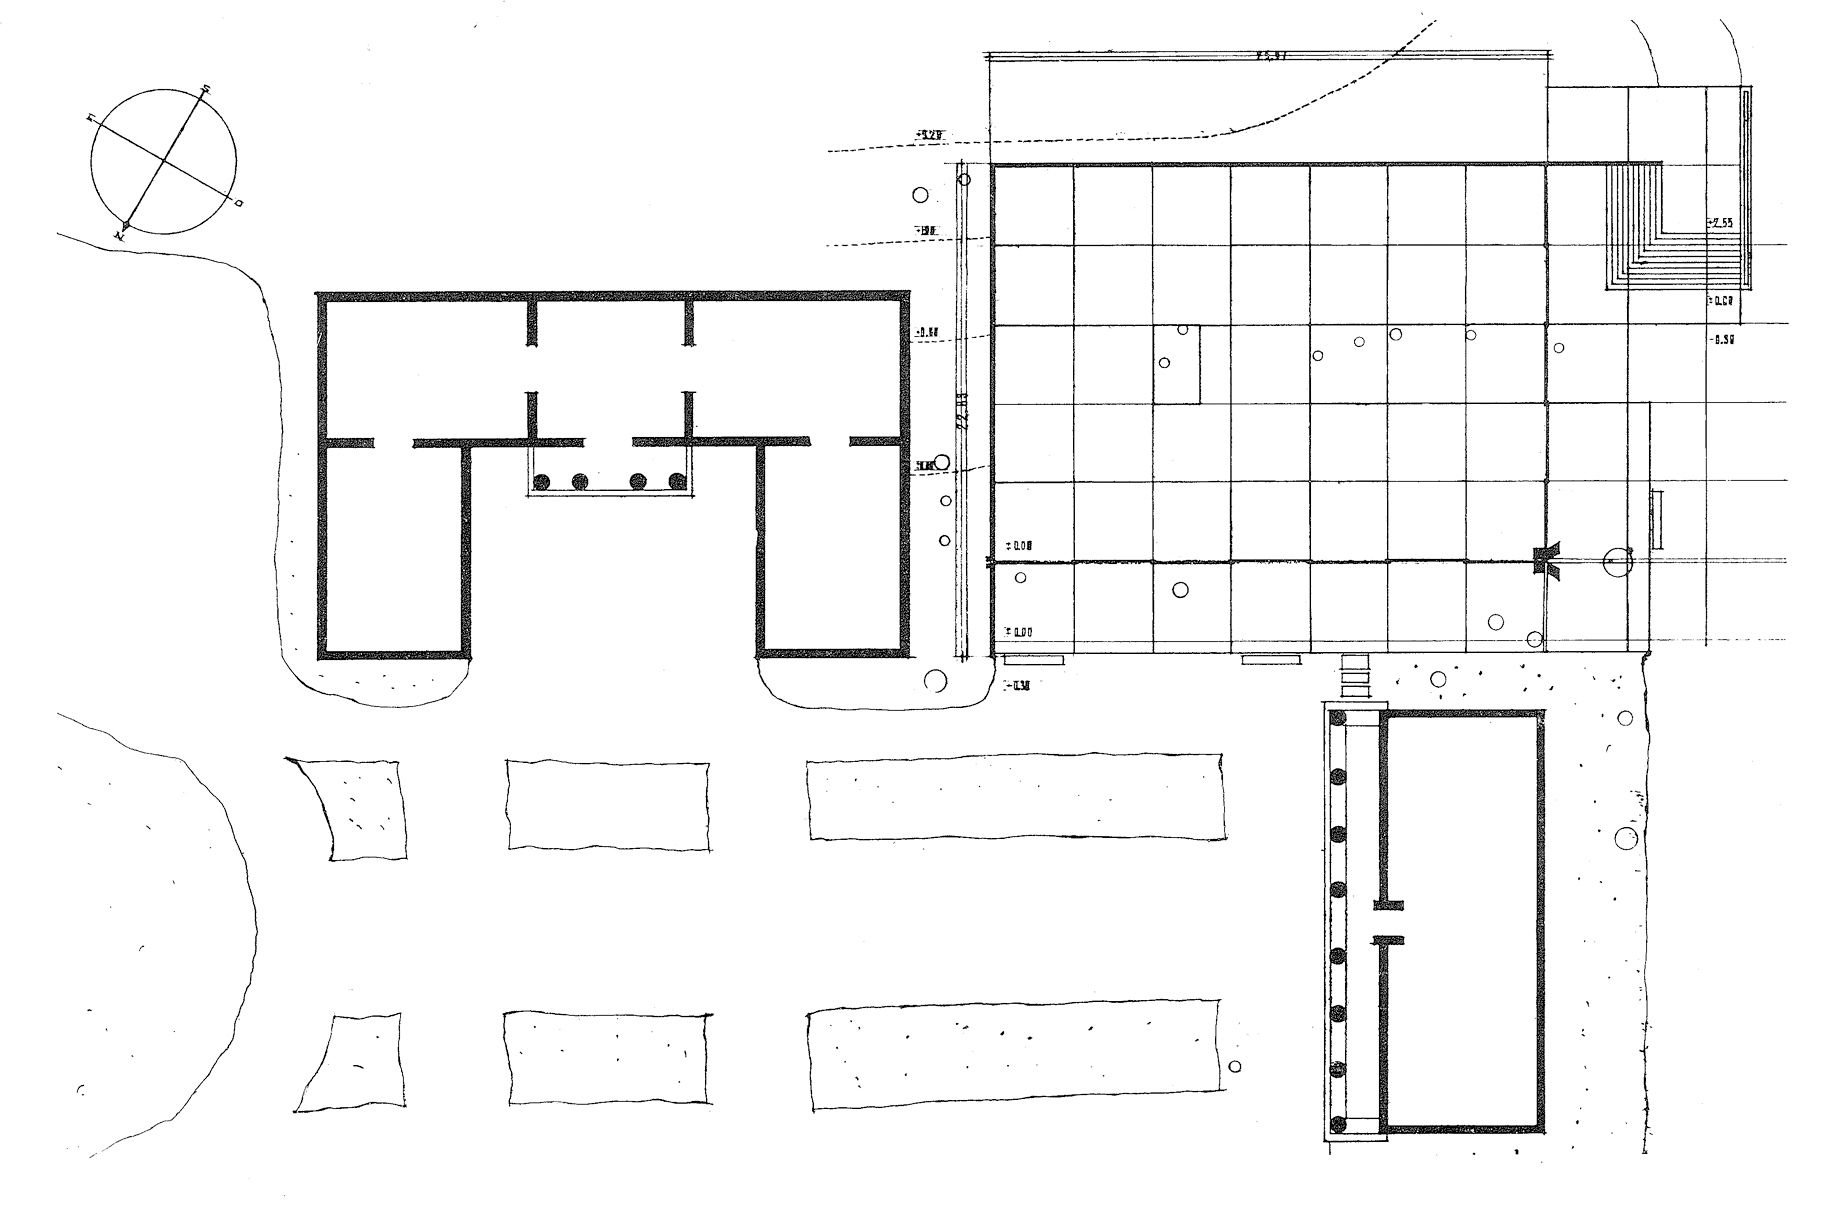 "Plan, Venice pavilion. USA's pavilion to the left. From ""Sverre Fehn – Samlede arbeider"", Orfeus forlag, 1997."